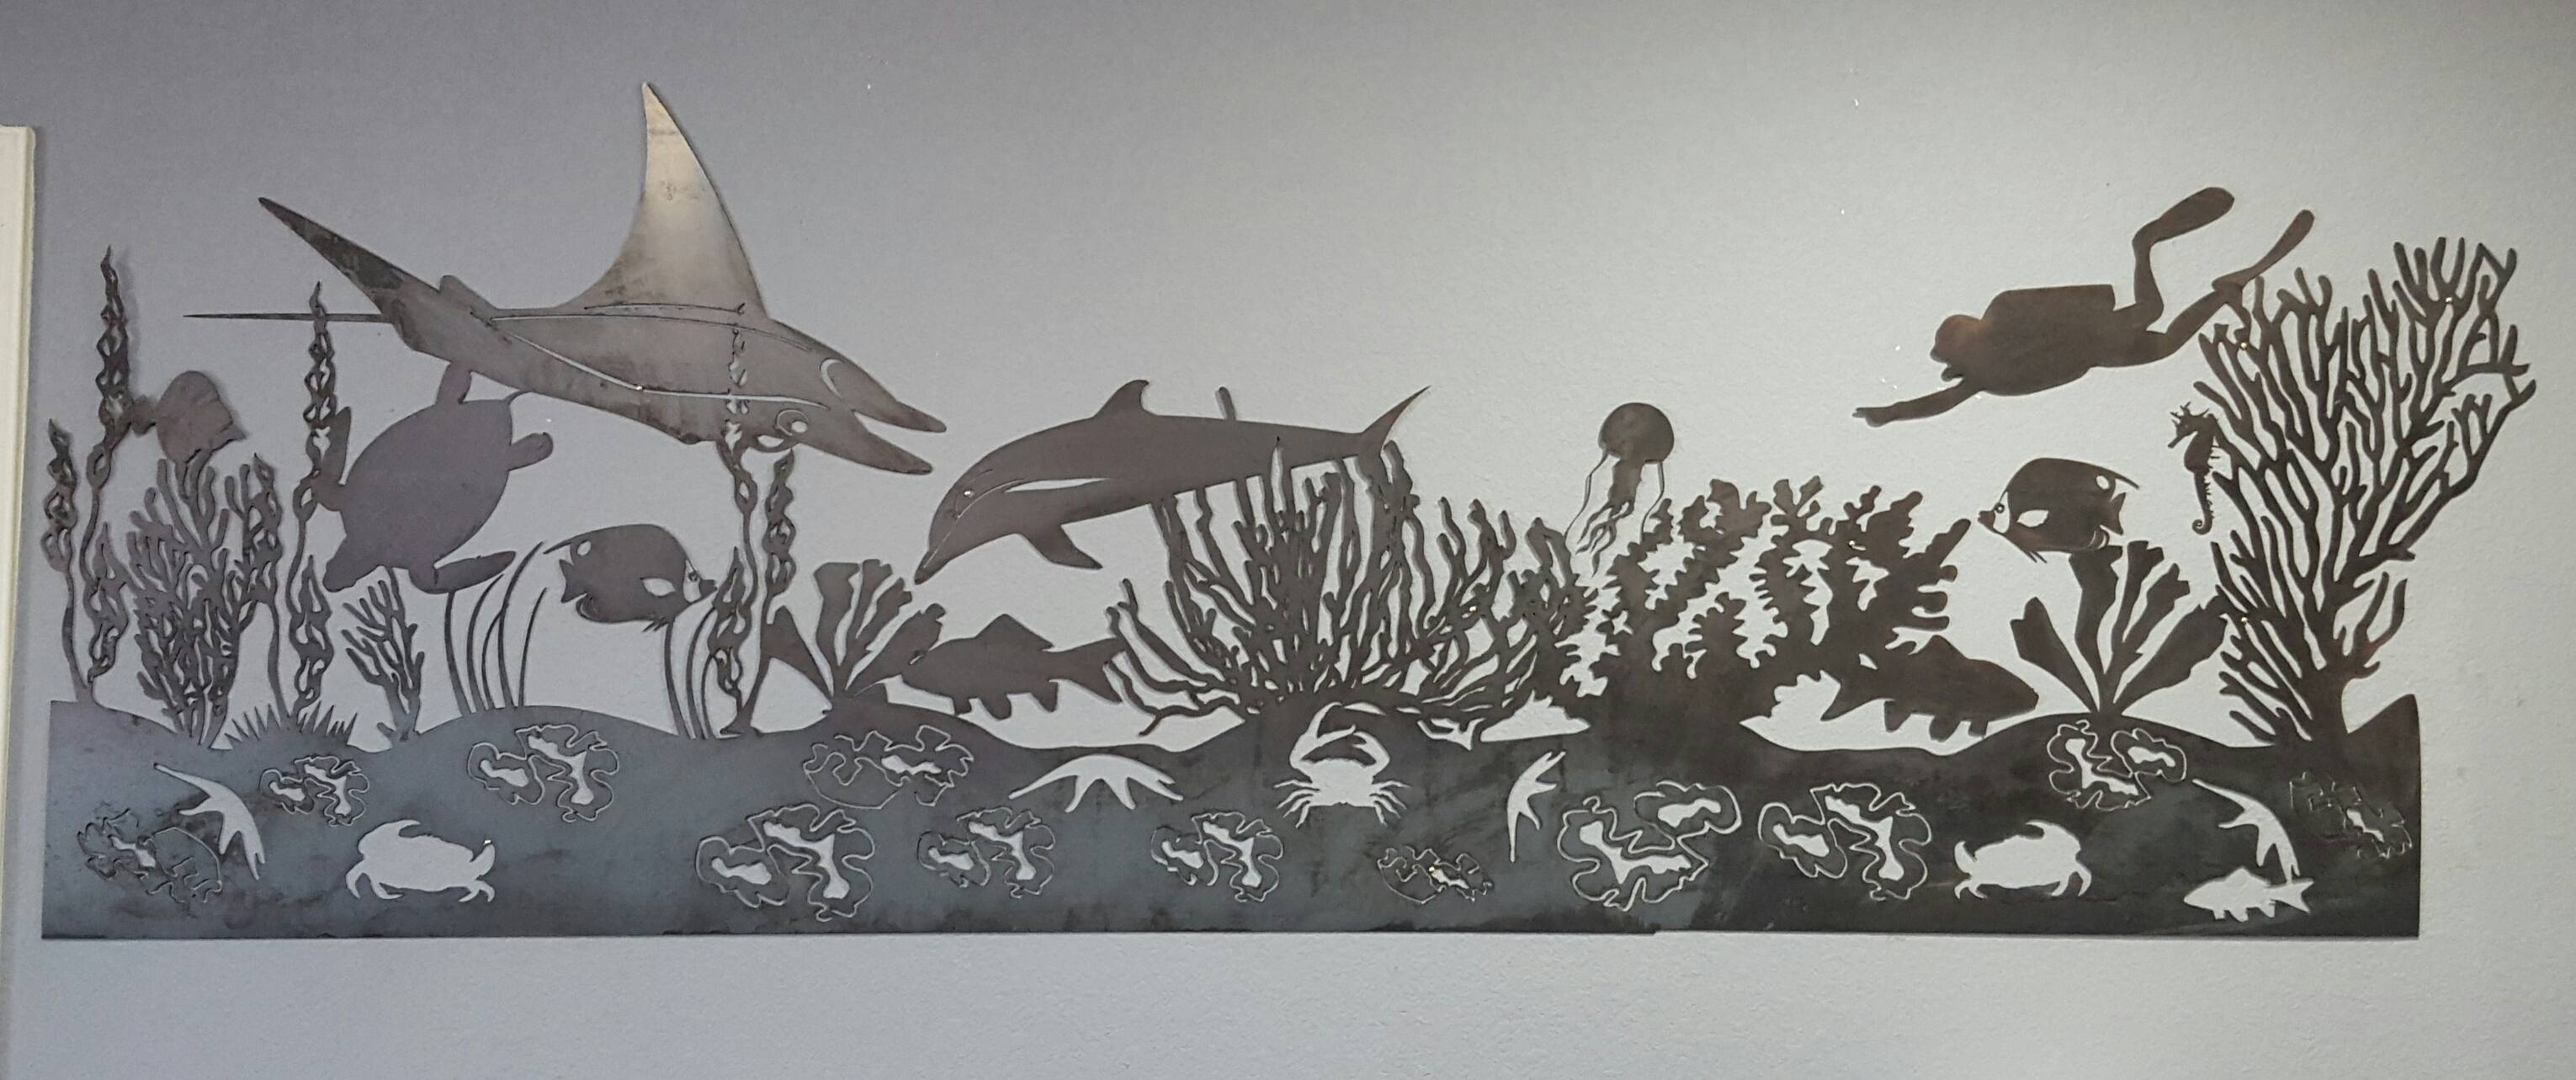 Sea Life Mural Metal Wall Art | Blue Collar Welding Llc For 2017 Dolphin Metal Wall Art (View 19 of 25)